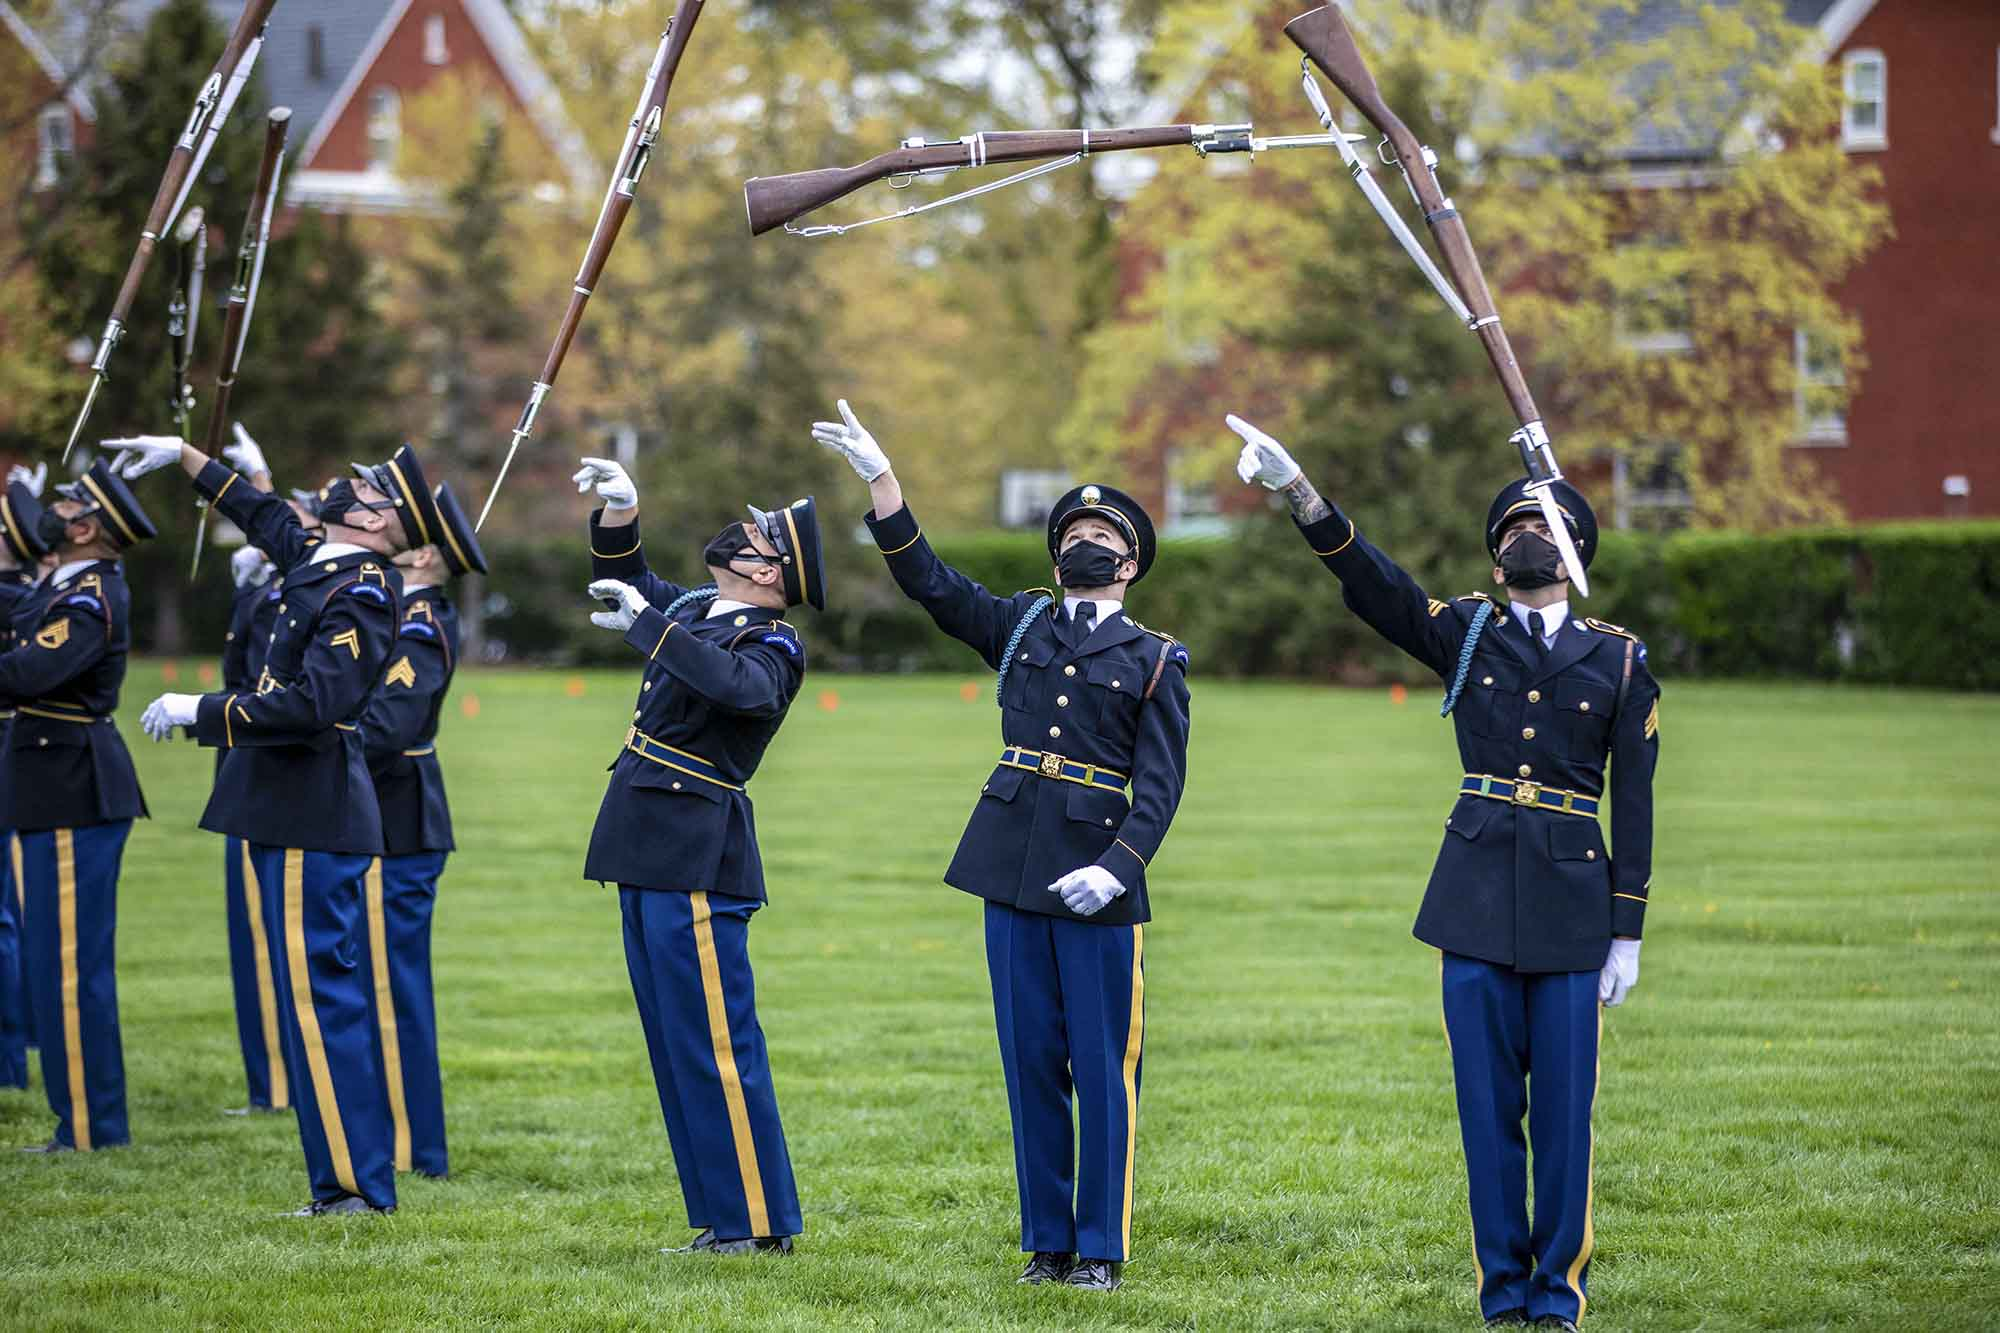 Soldiers perform during a tour at Arlington National Cemetery, Va., March 19, 2021. (Sgt. Jacob Holmes/Army)